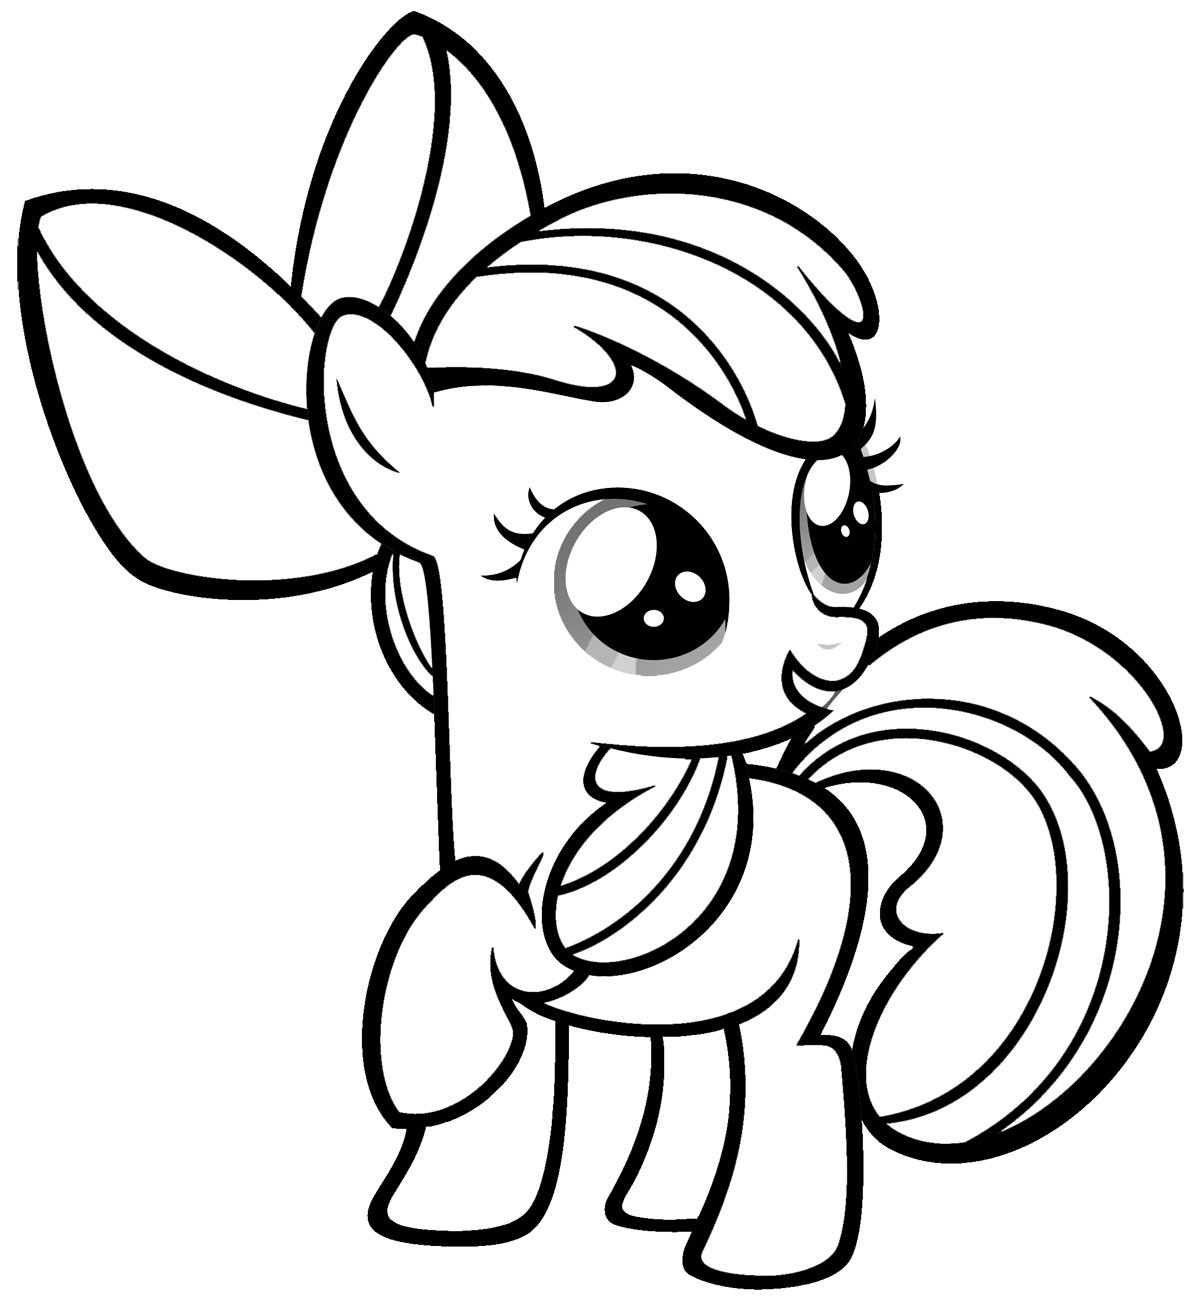 coloring pages of my little pony - Pony Coloring Pages